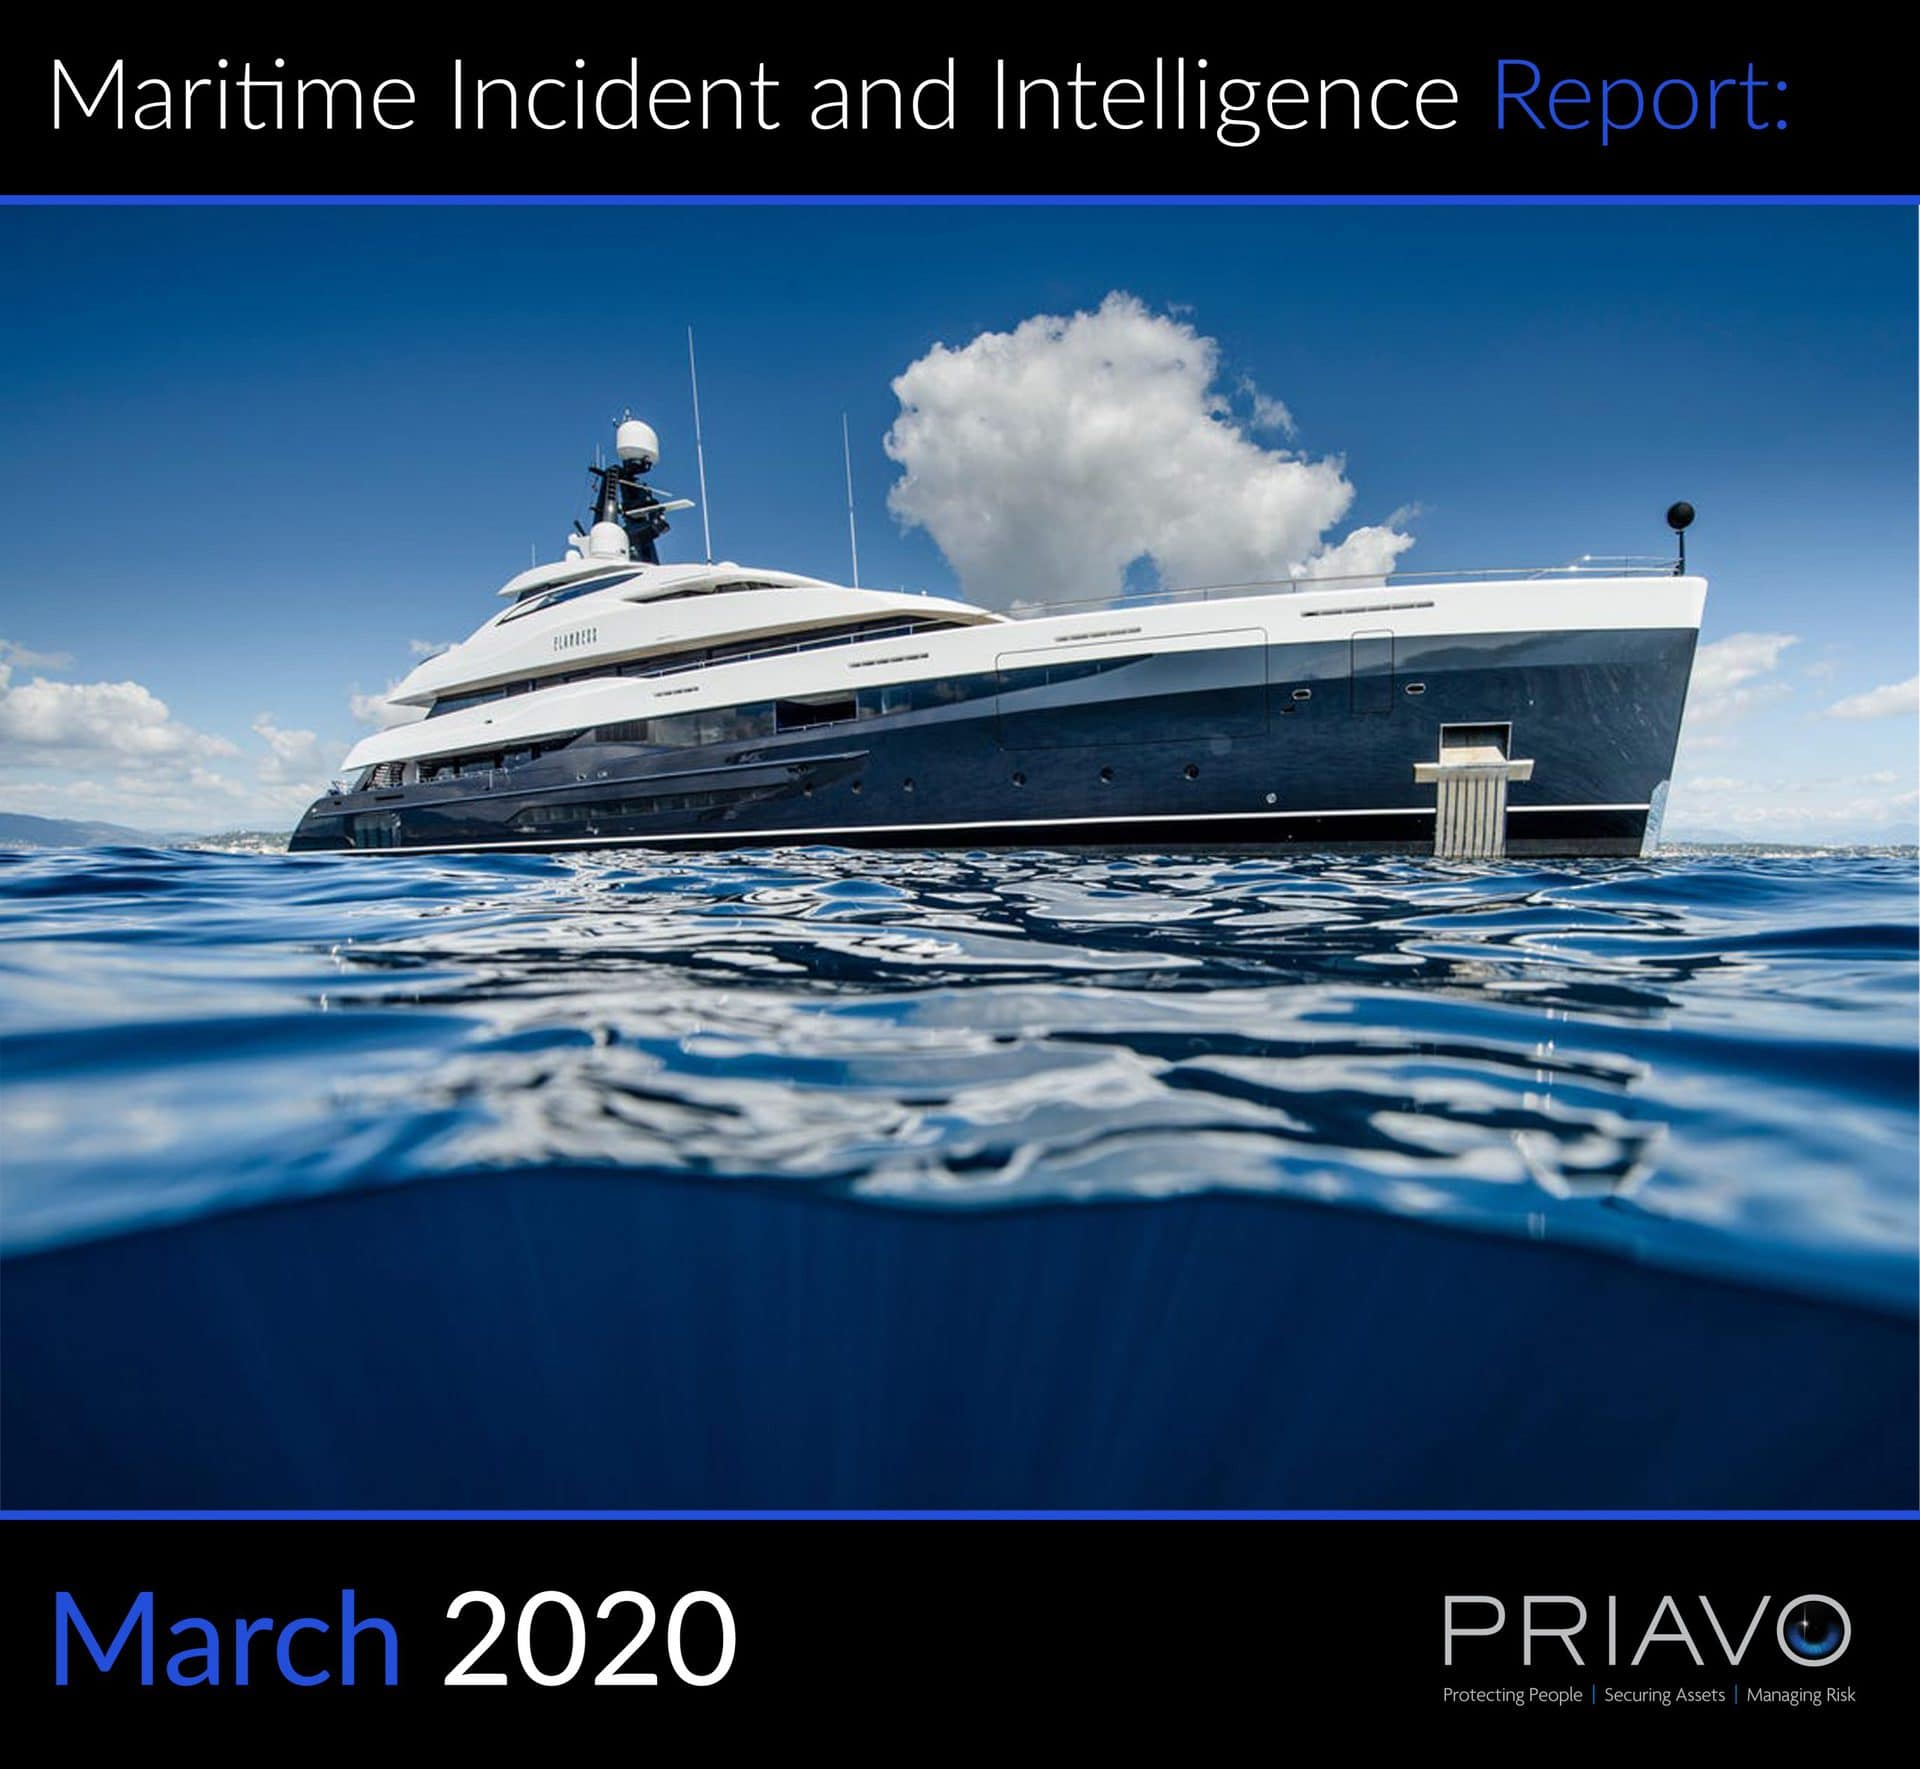 Maritime Incident Report: March 2020